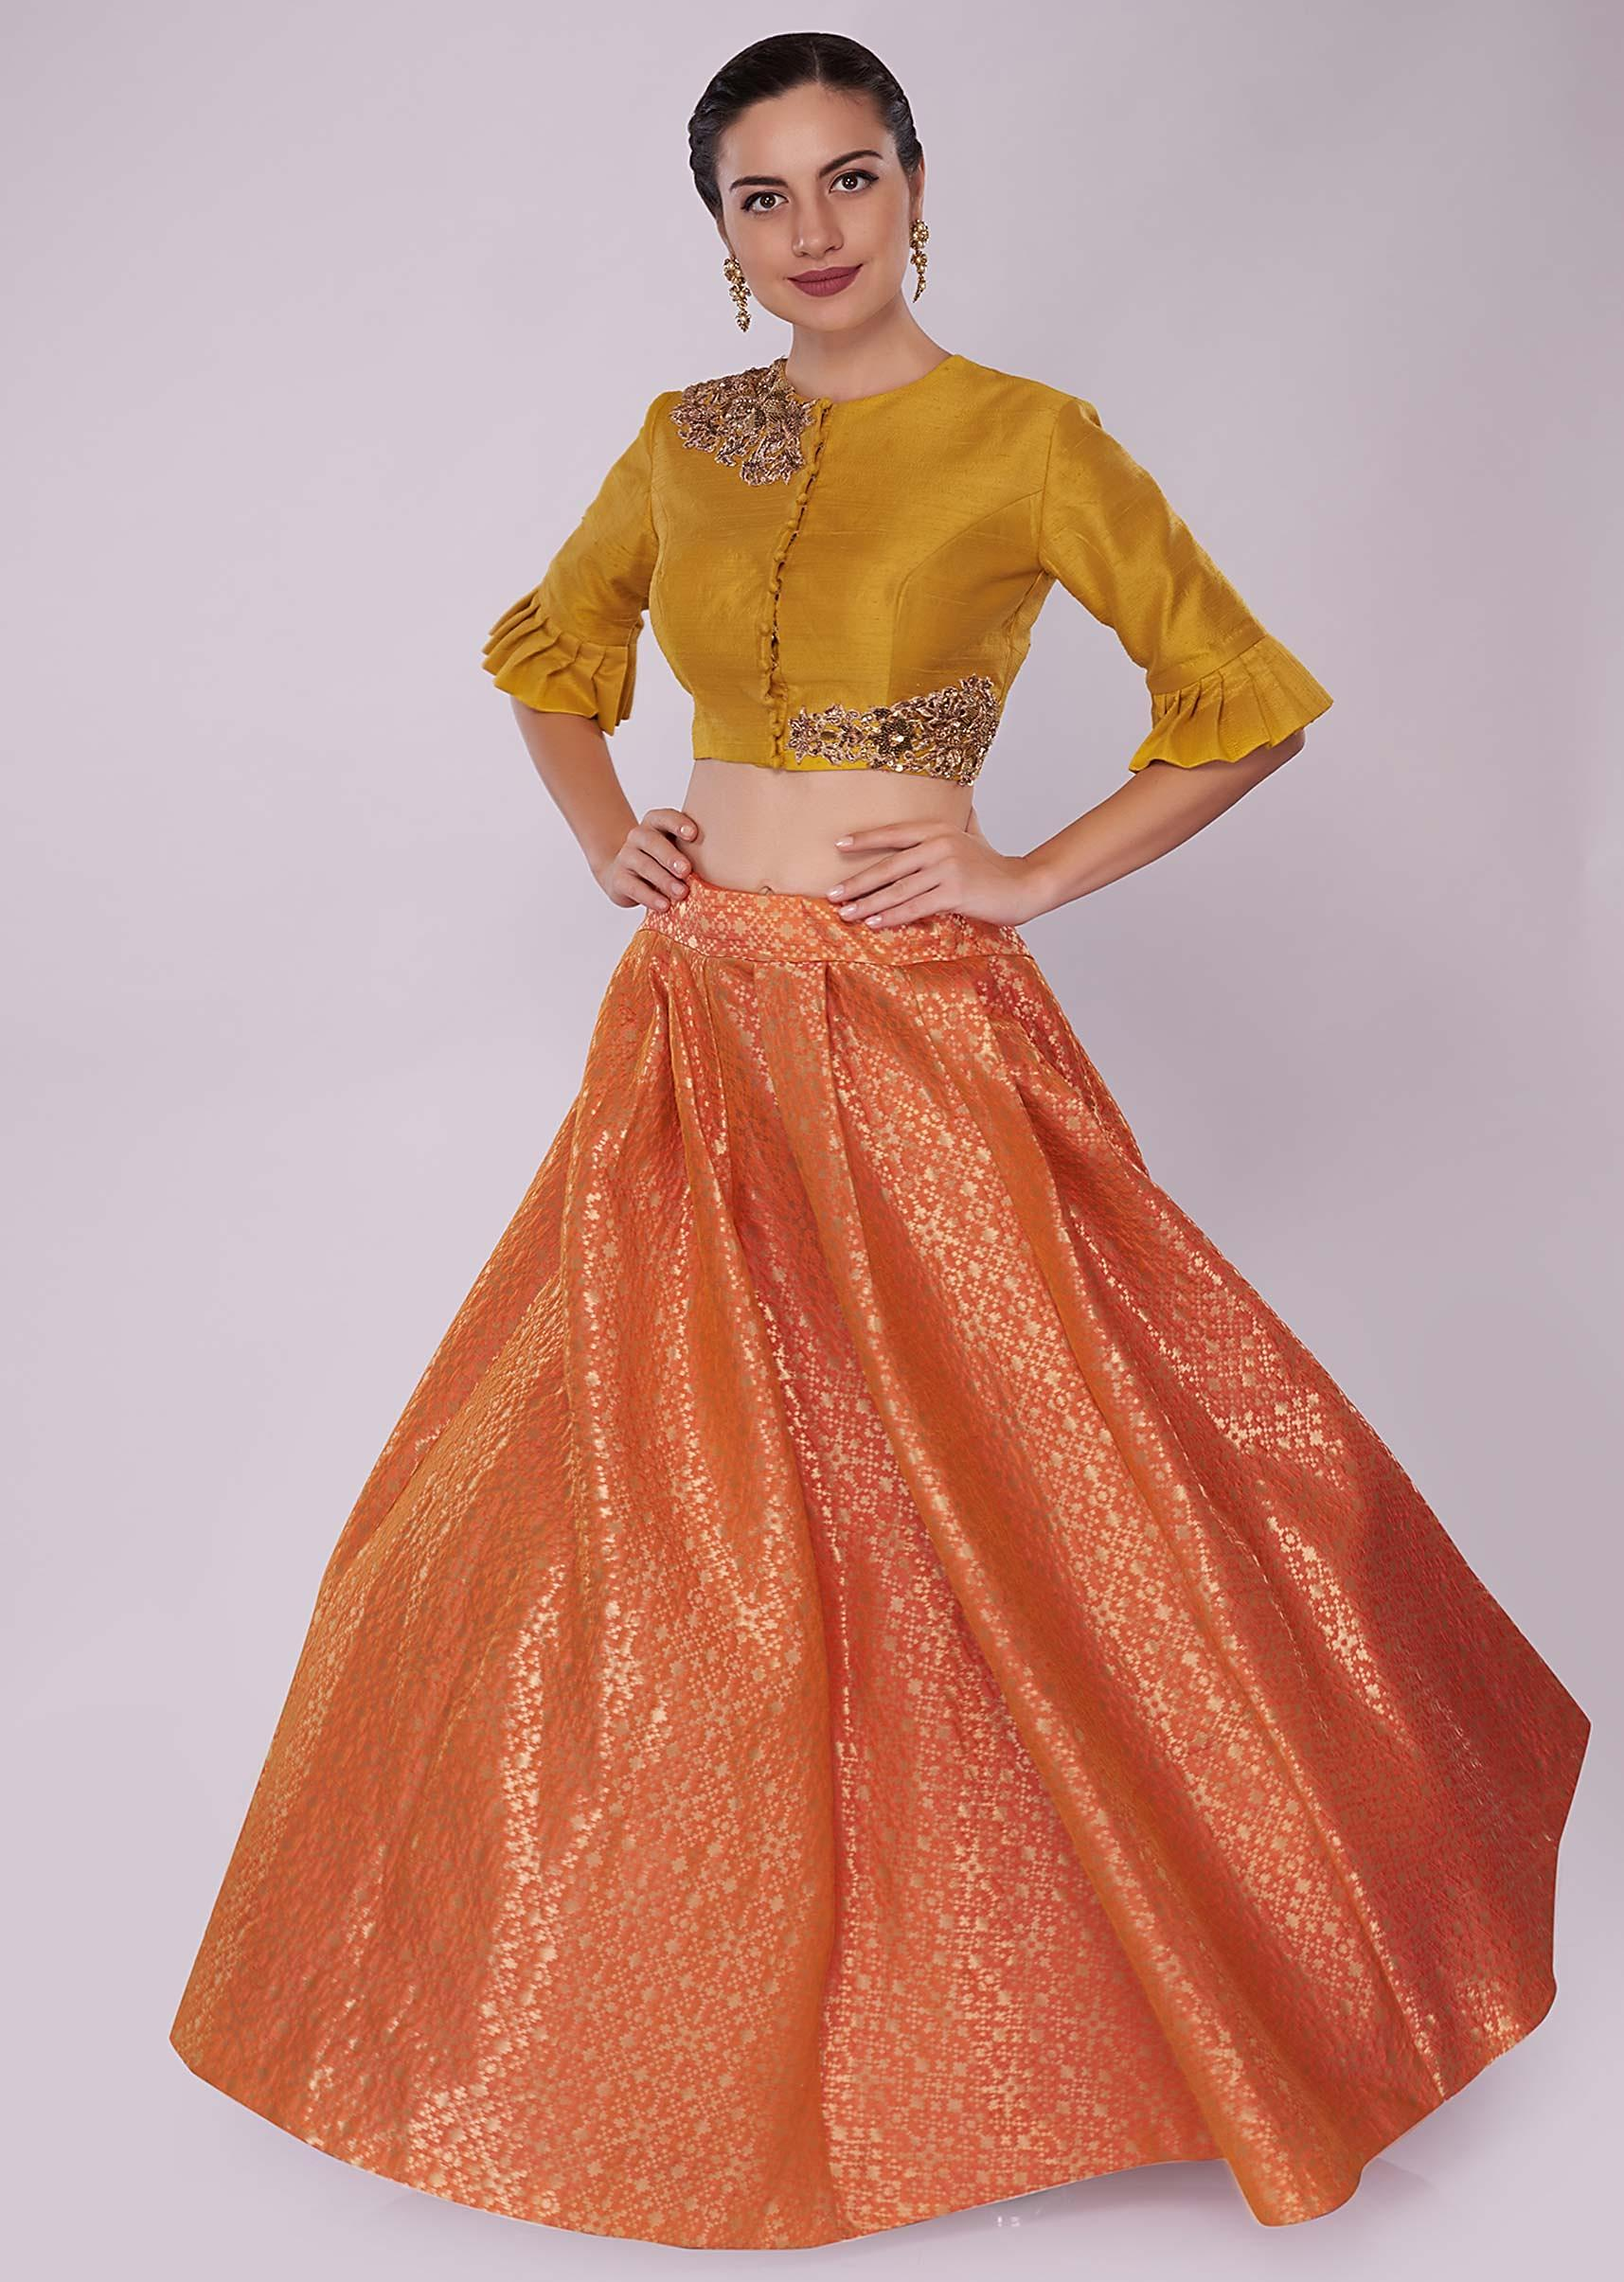 Orange brocade skirt  paired with a chrome yellow raw silk crop top